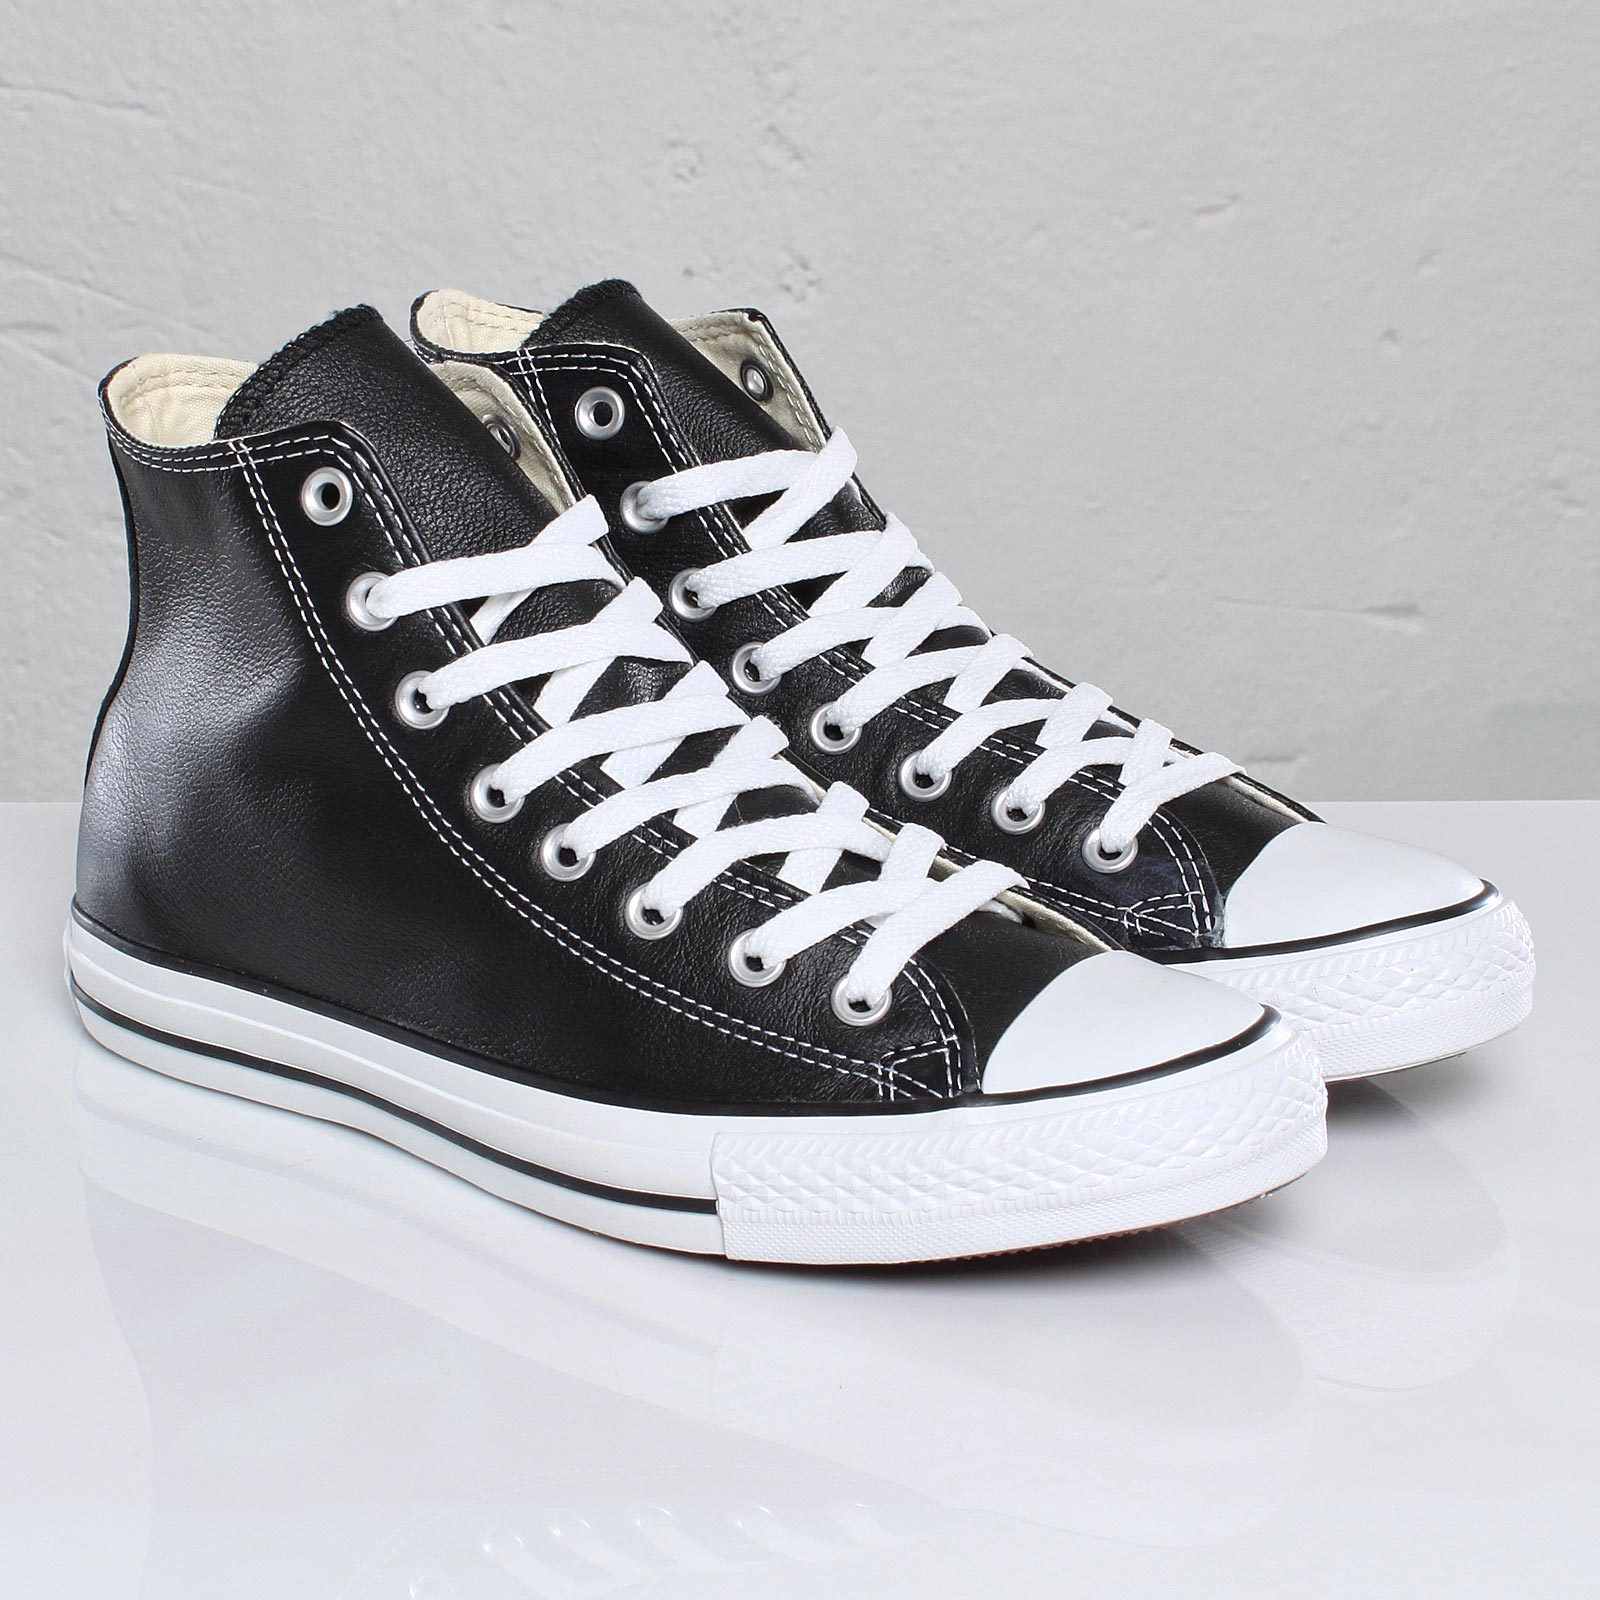 09f4a7fec257b Converse All Star Leather Hi - 81215 - Sneakersnstuff | sneakers ...